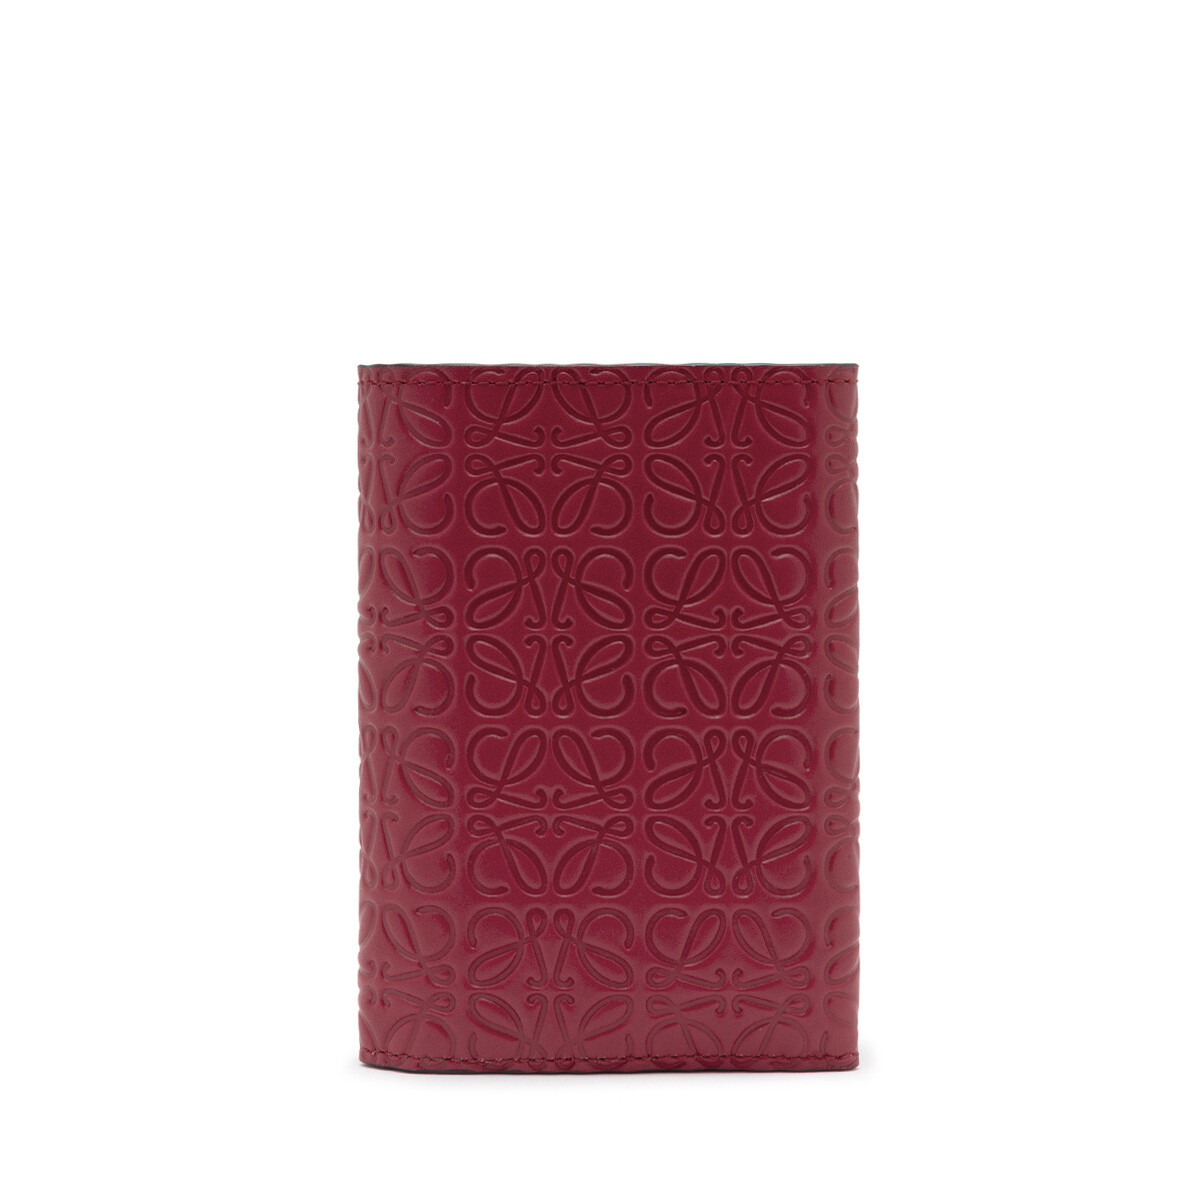 LOEWE Repeat Small Vertical Wallet 覆盆子 front